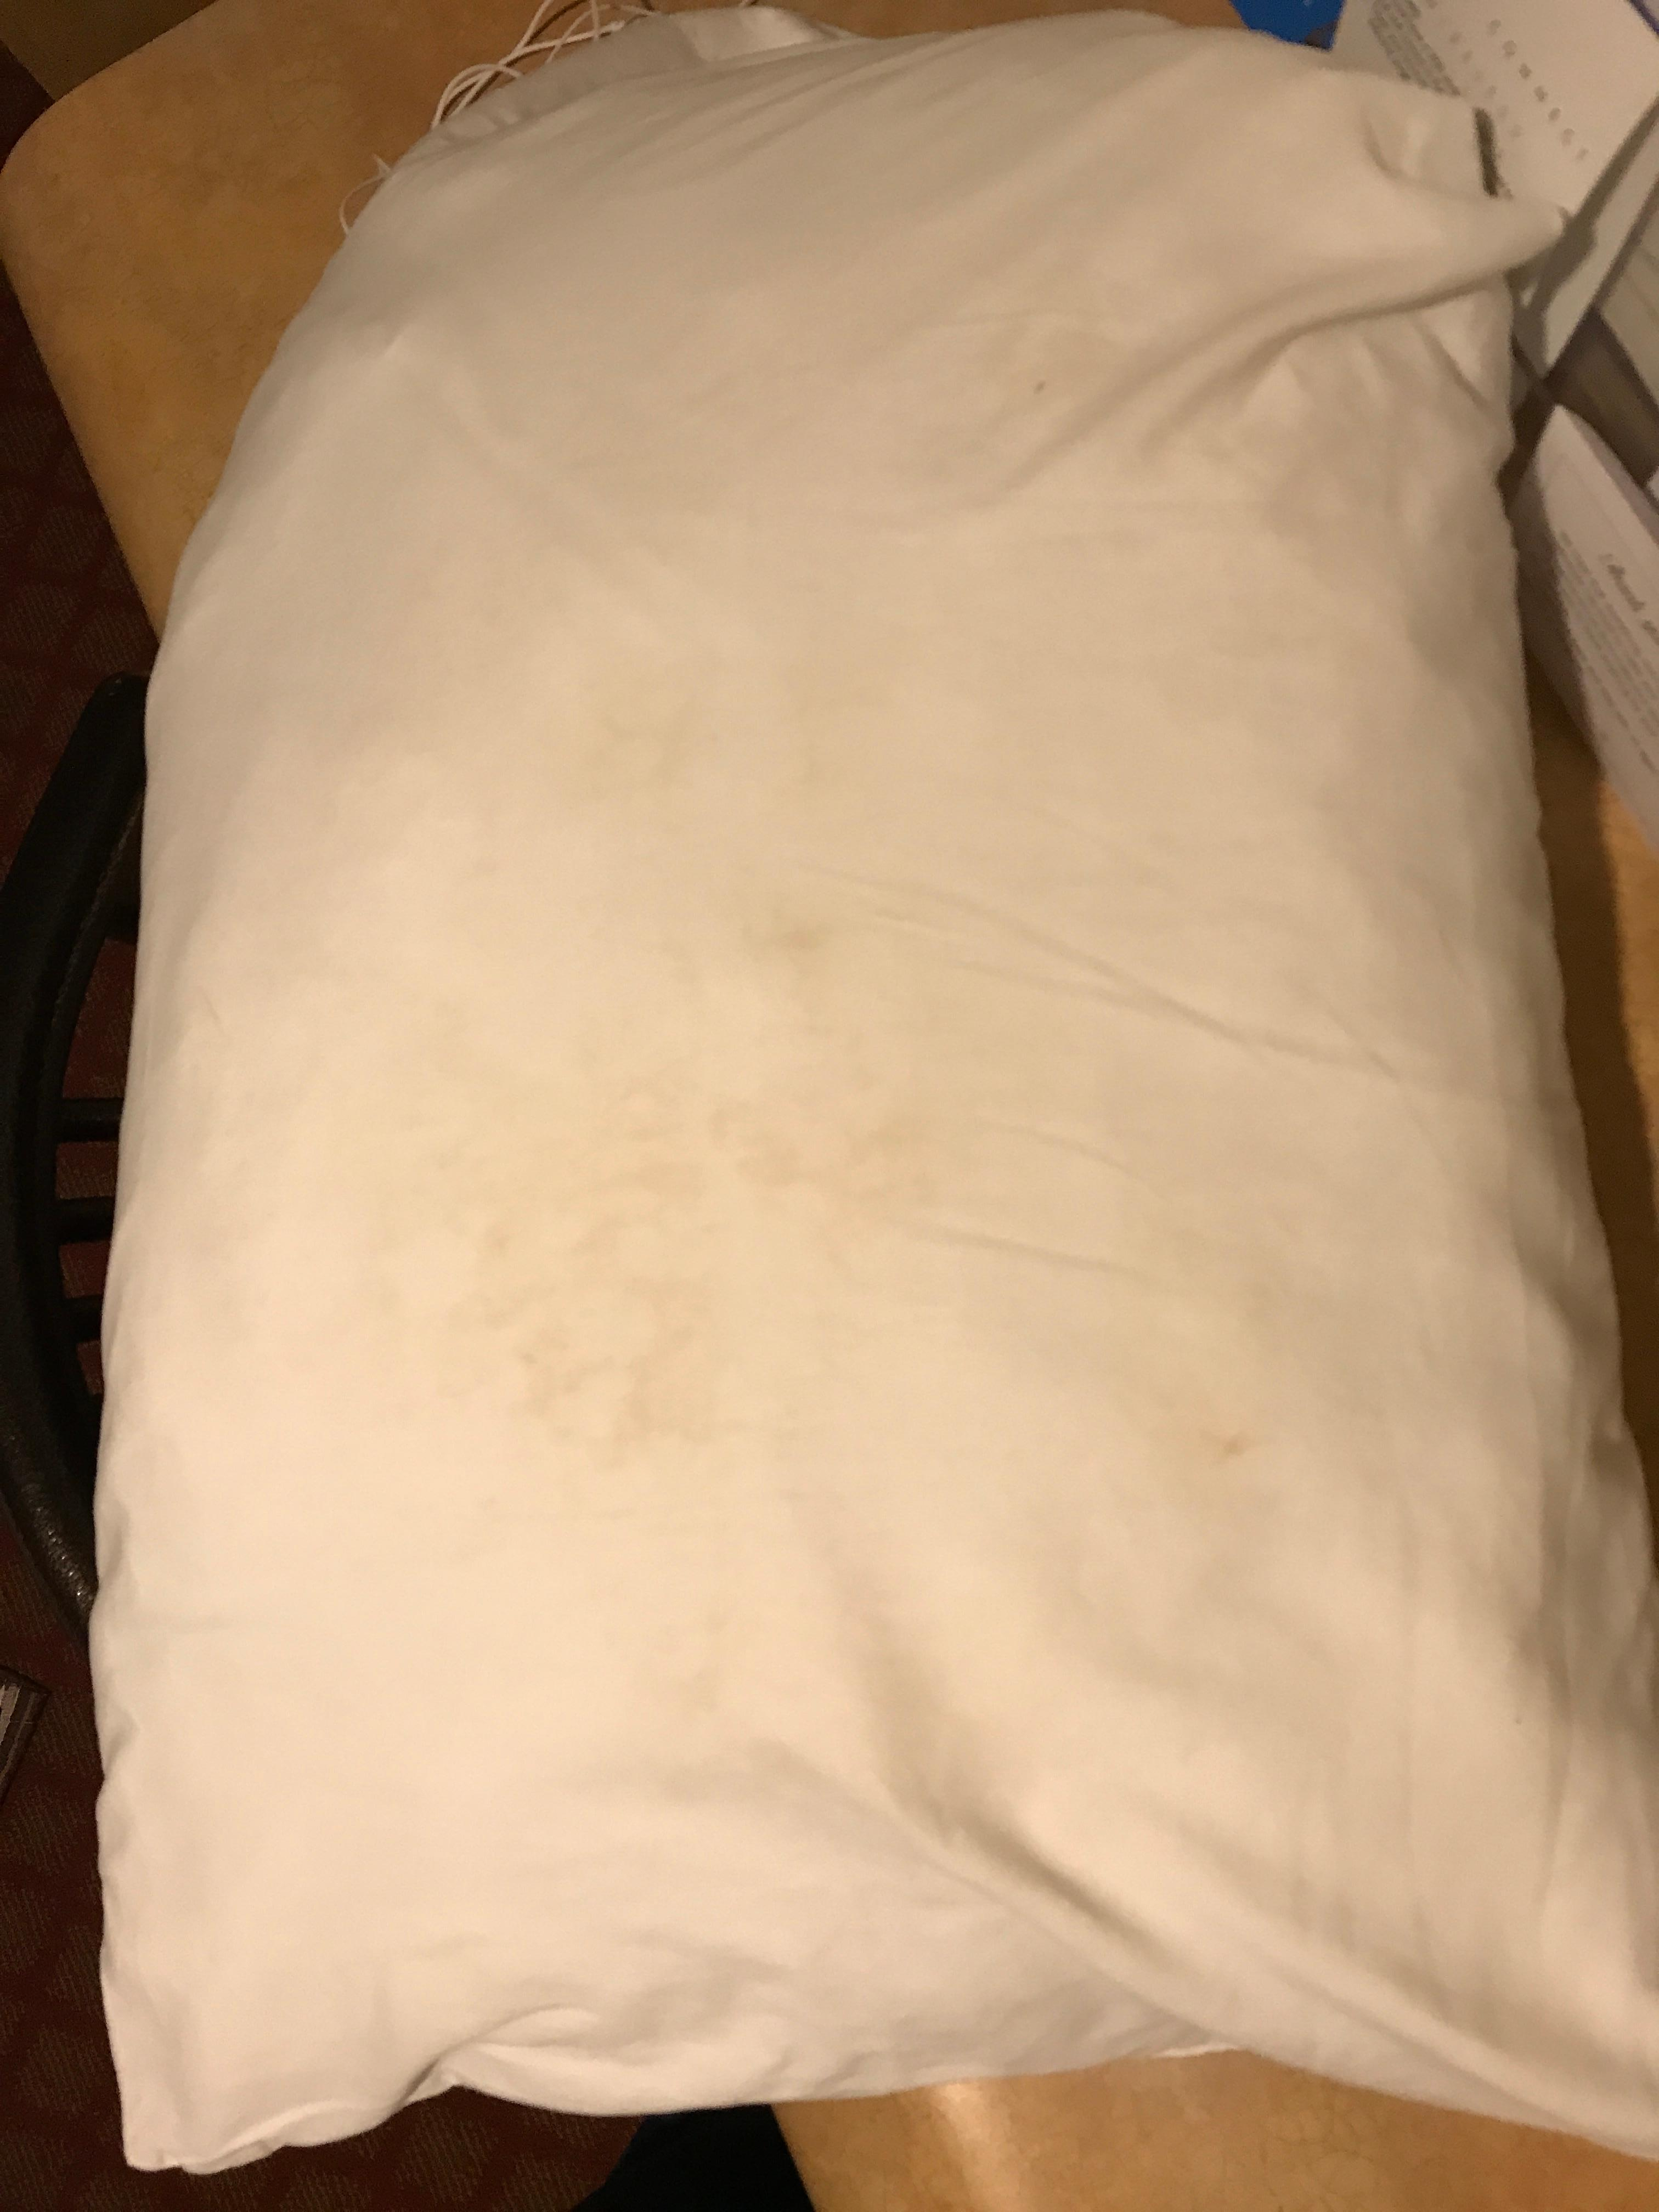 Pillow, after I asked to change sheets